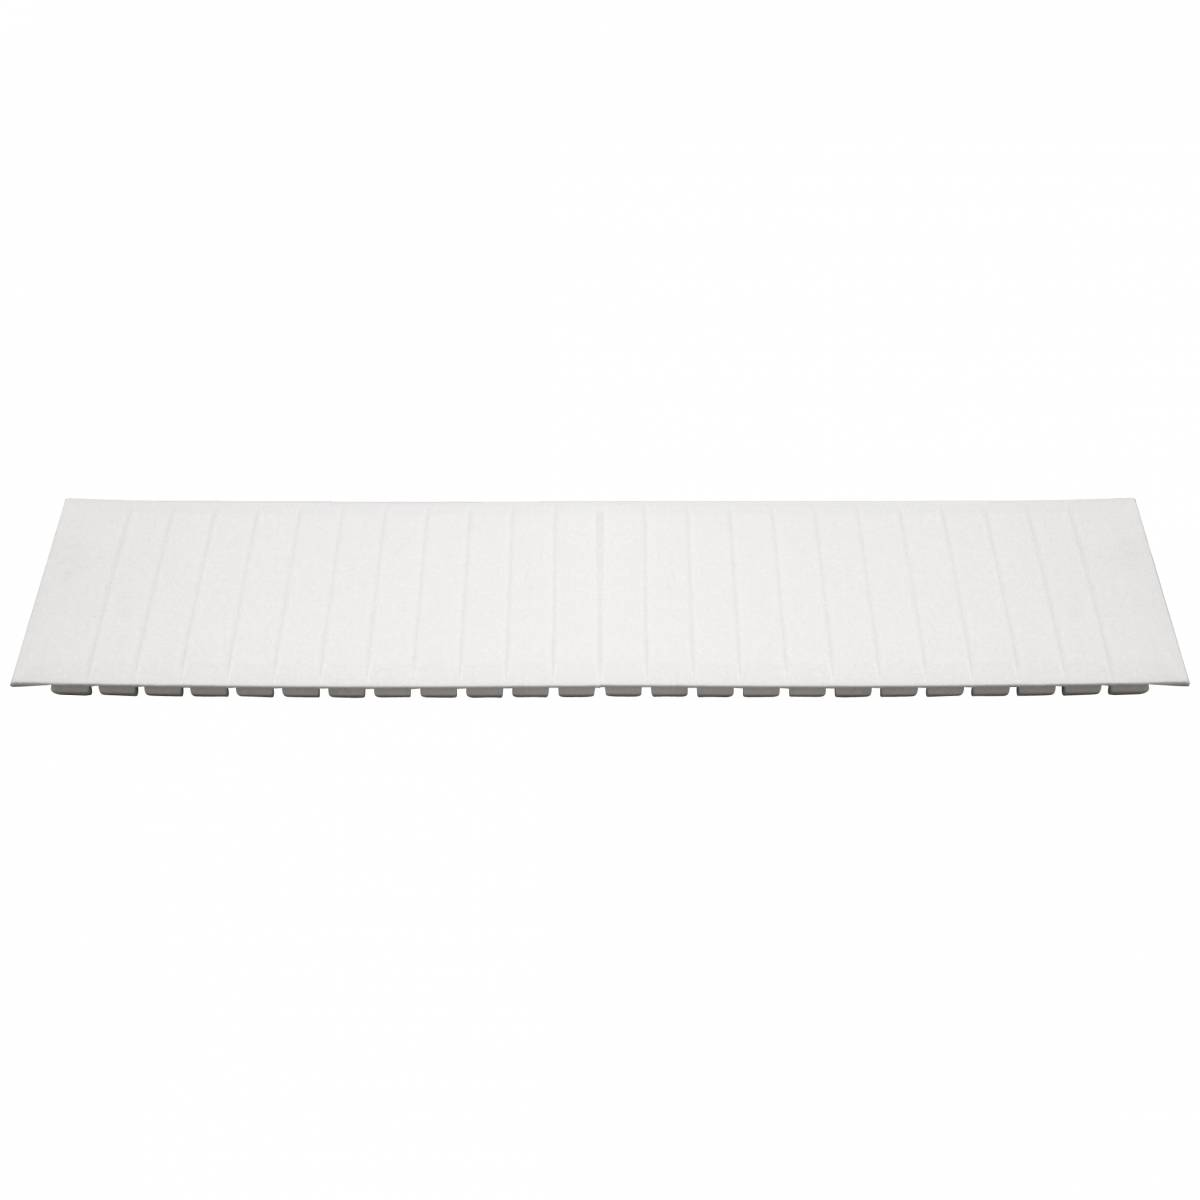 Blank cover, 12 MW, white